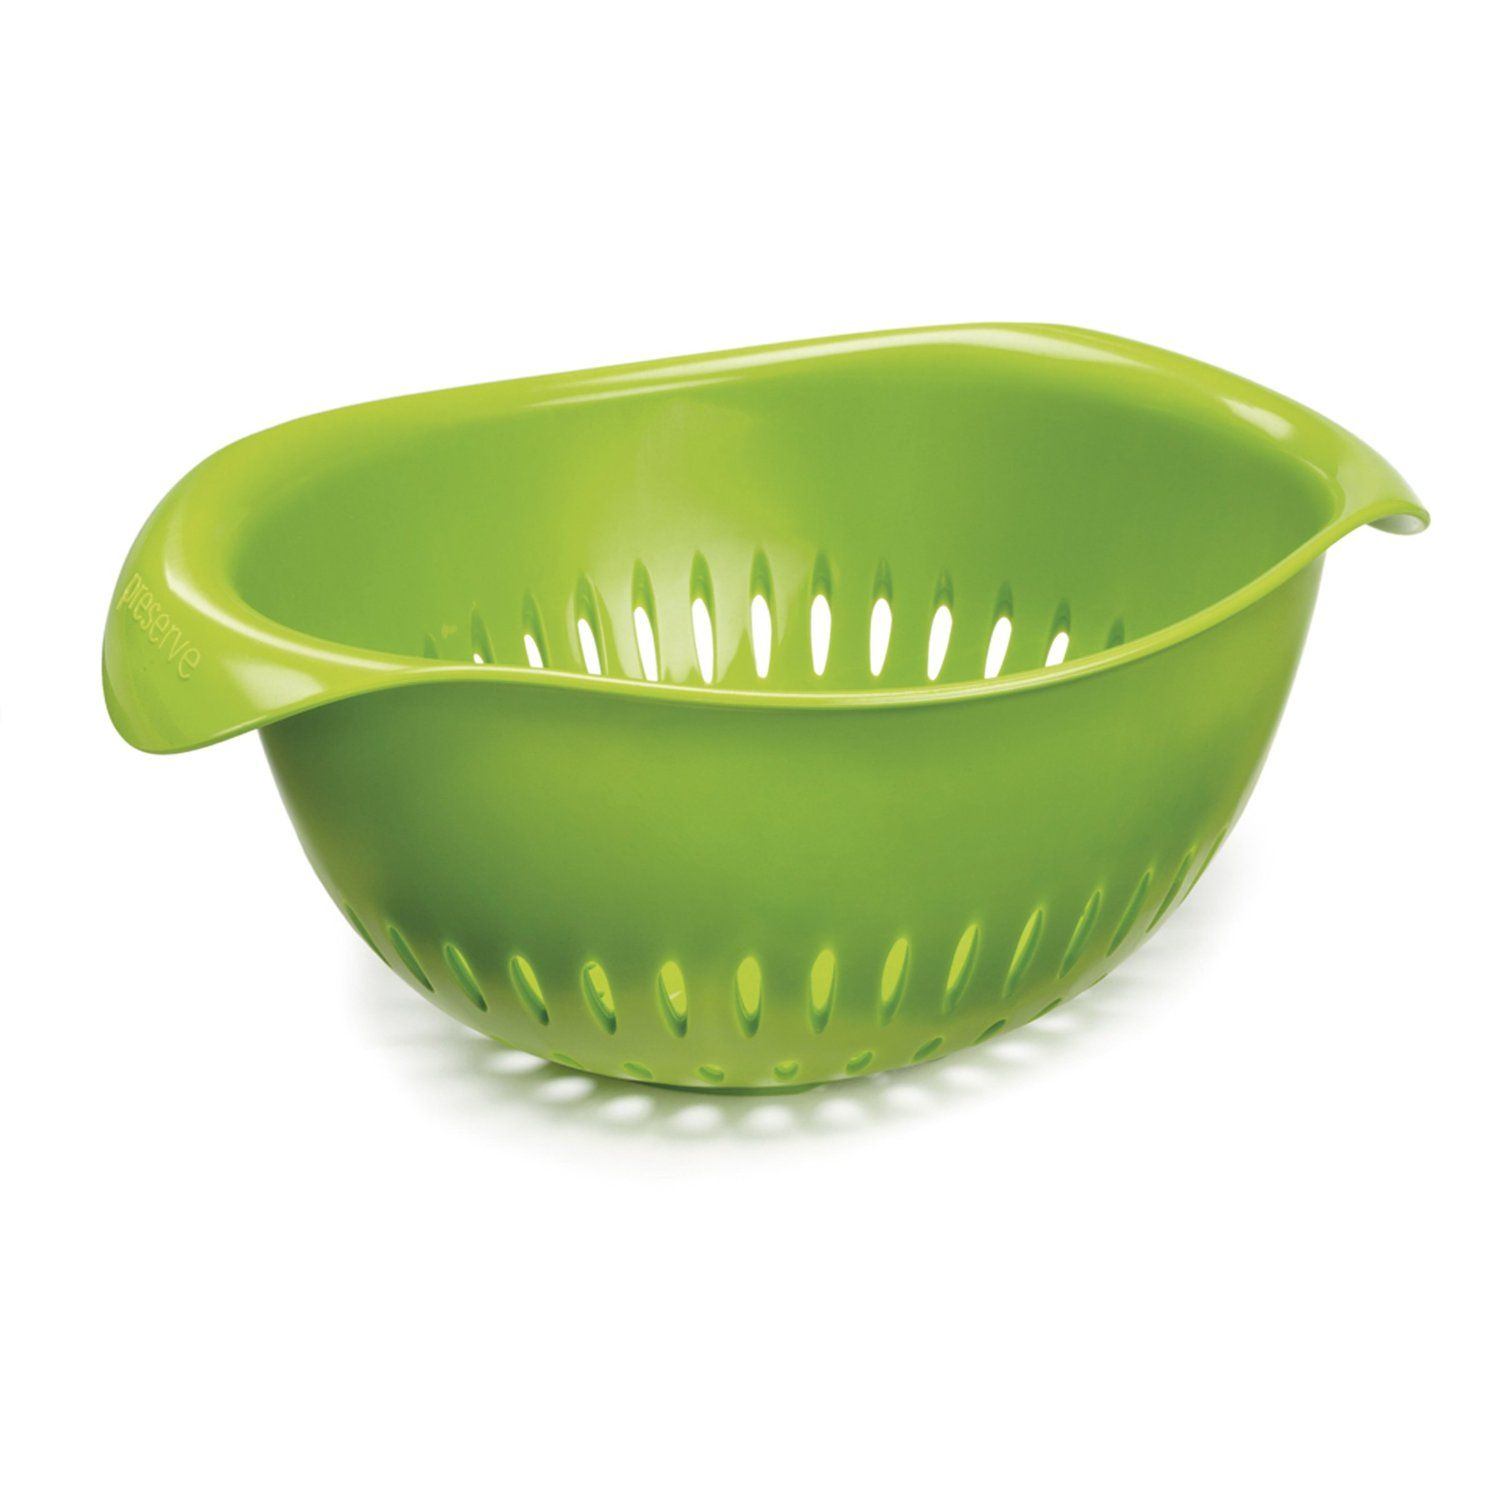 Preserve Colander- The Eco-Friendly, Made in America Wedding Registry- The Kitchen Cookware and Storage | Sunshine Guerrilla